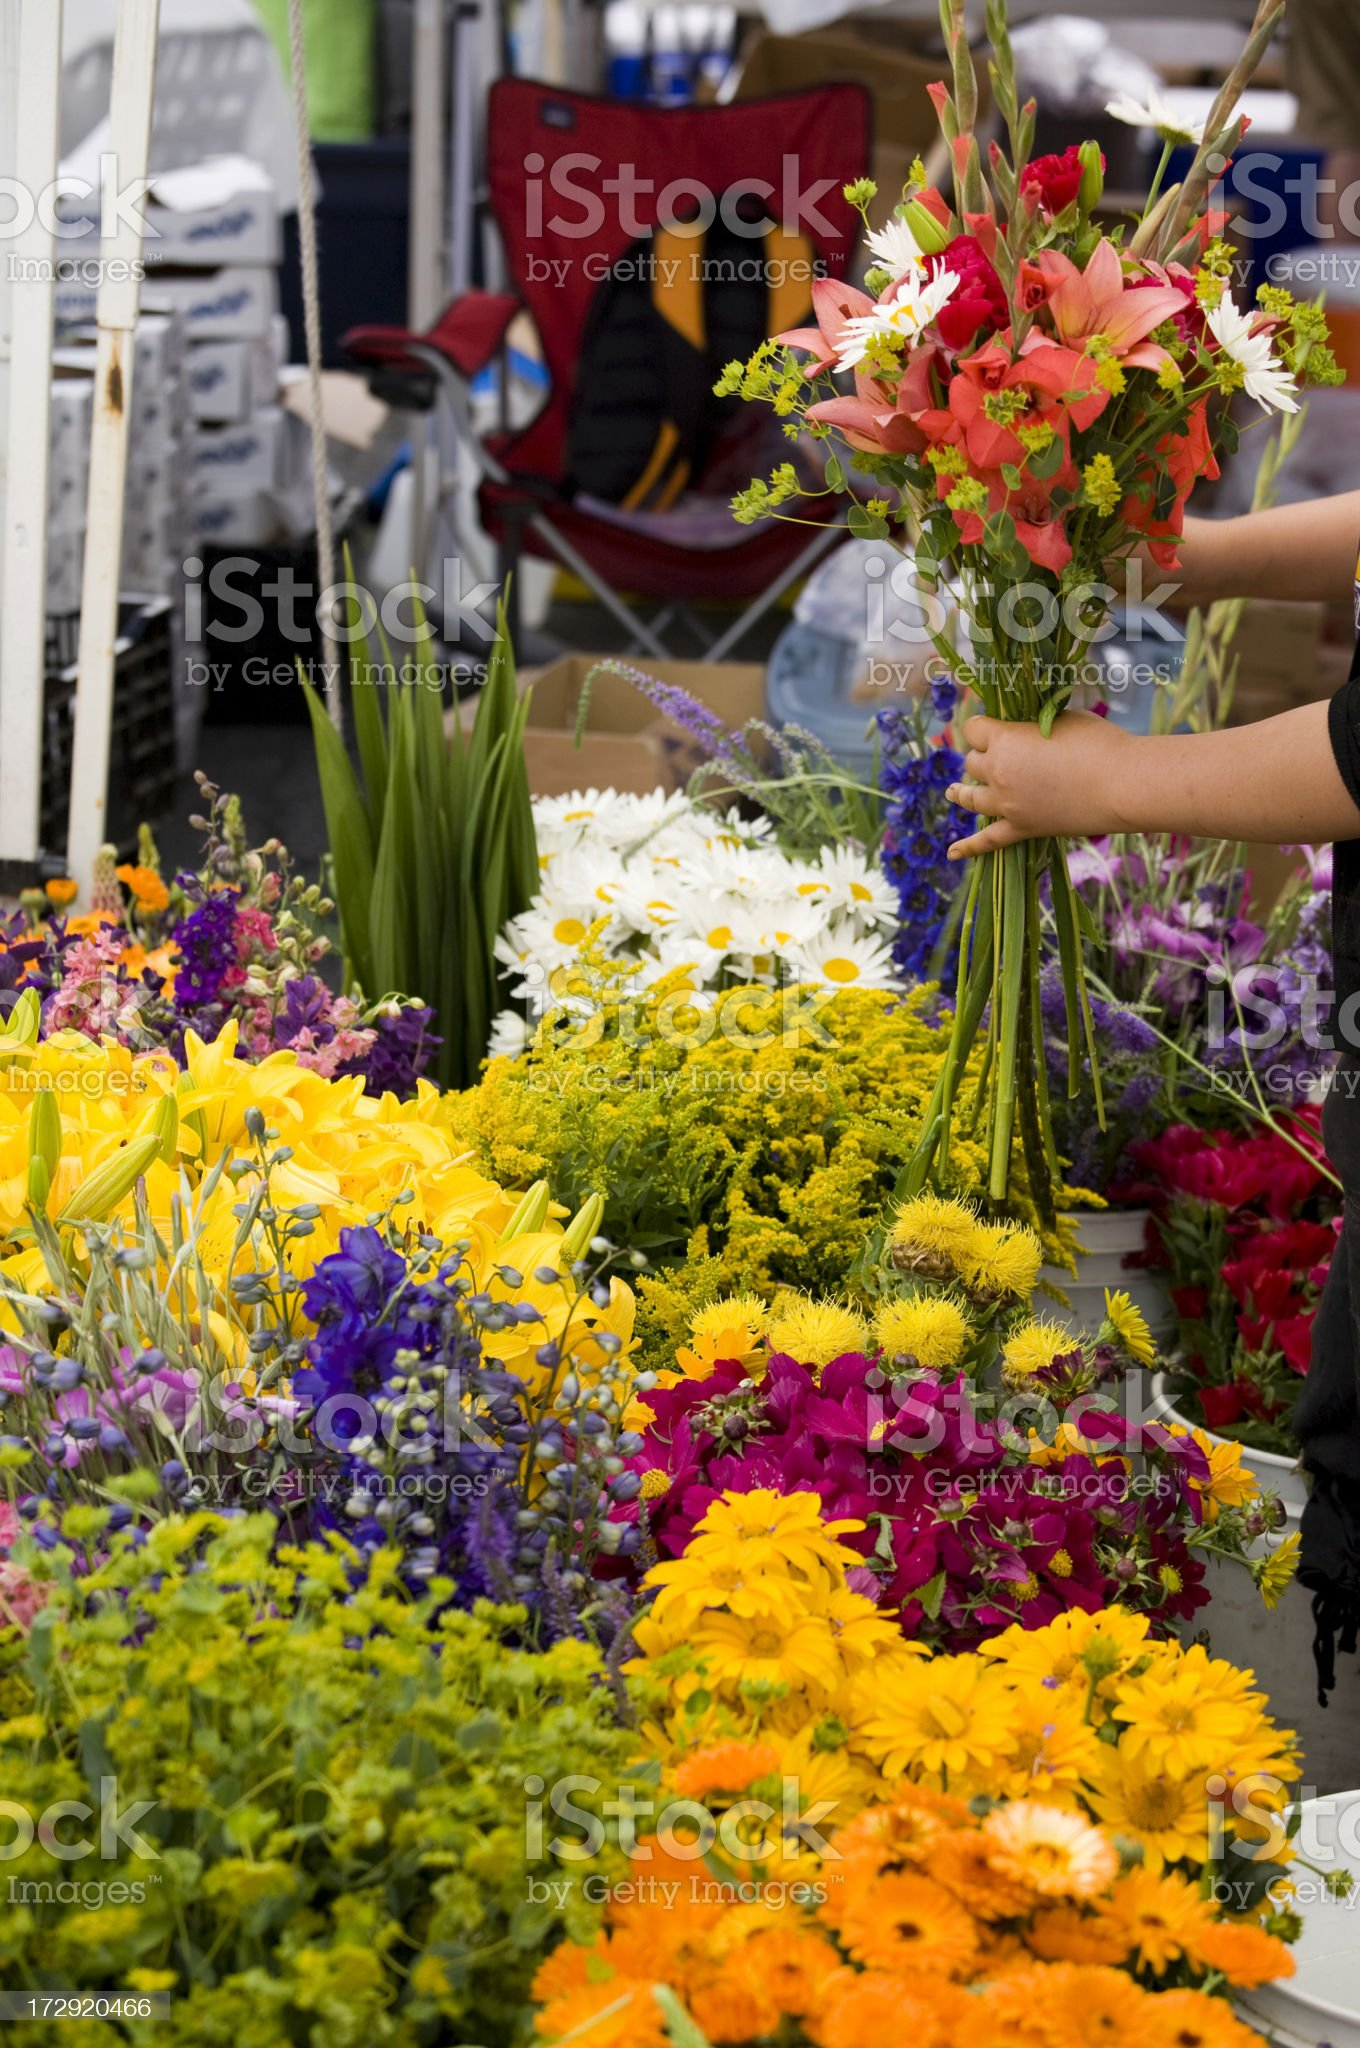 Outdoor fresh flower market royalty-free stock photo